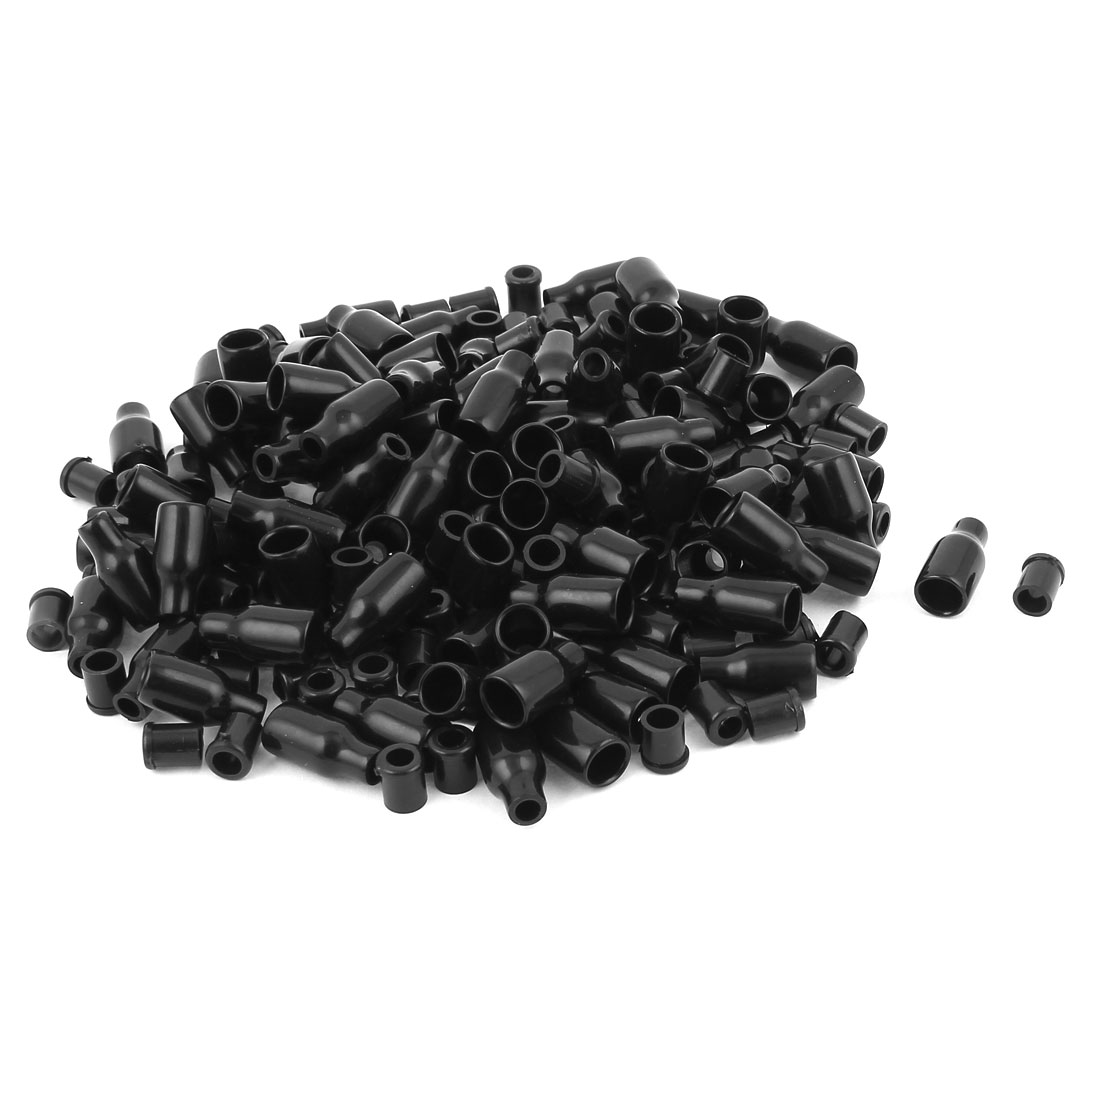 100 Pcs Soft PVC Wire Terminal Sleeves Insulating Covers Caps Black